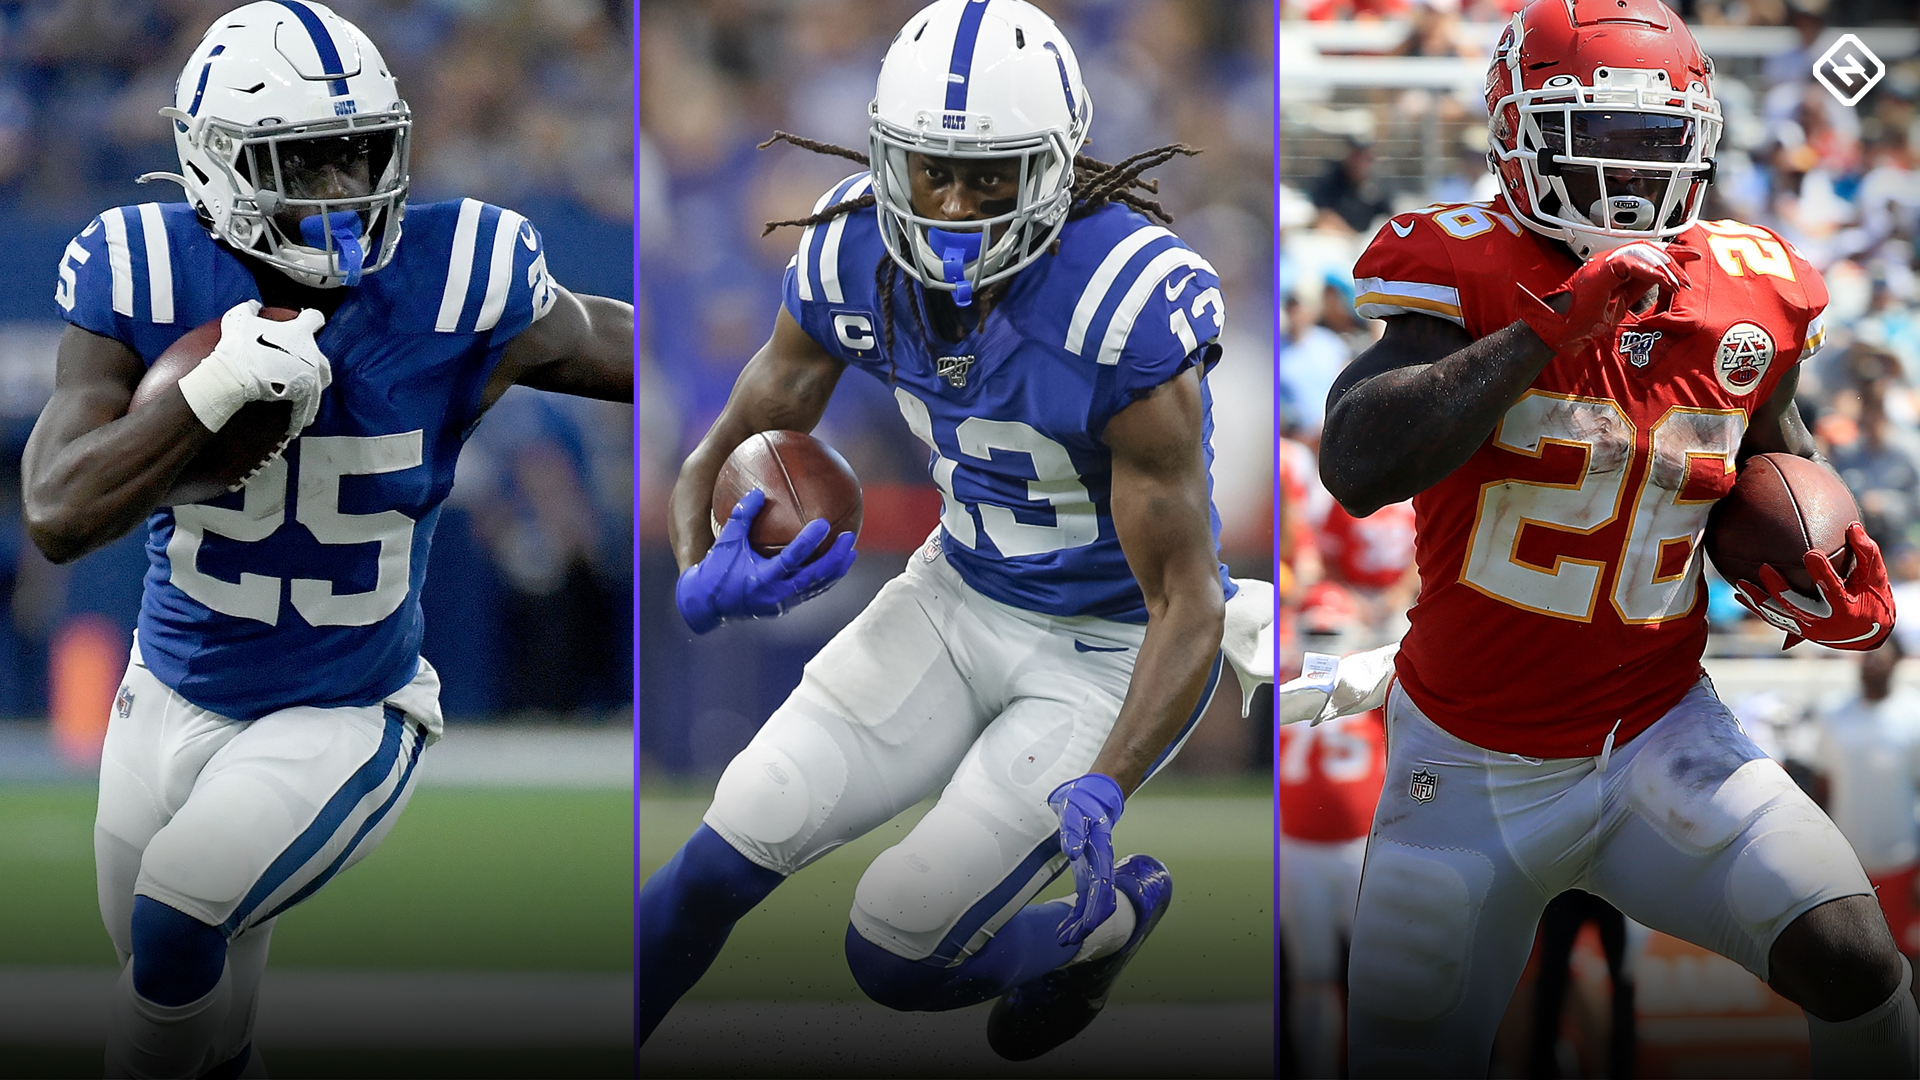 Week 5 Sunday Night Football Injury Updates: Marlon Mack, T.Y. Hilton, Damien Williams, Sammy Watkins fantasy start-or-sit worries